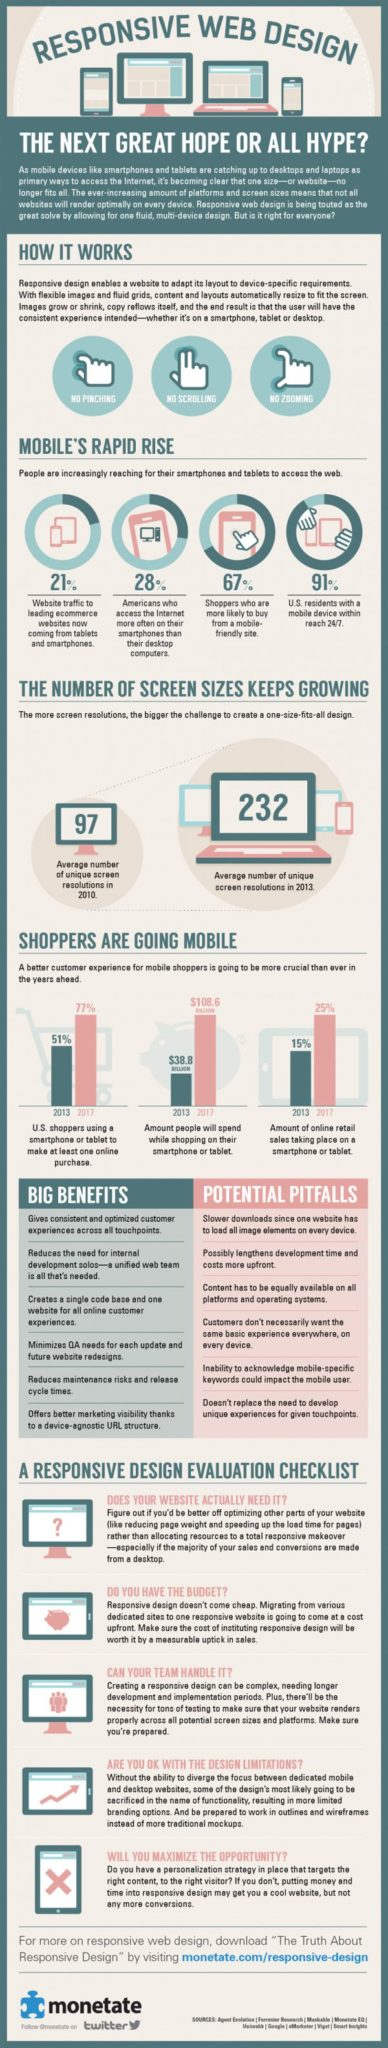 Is Responsive Design Hope or Hype? [Infographic]